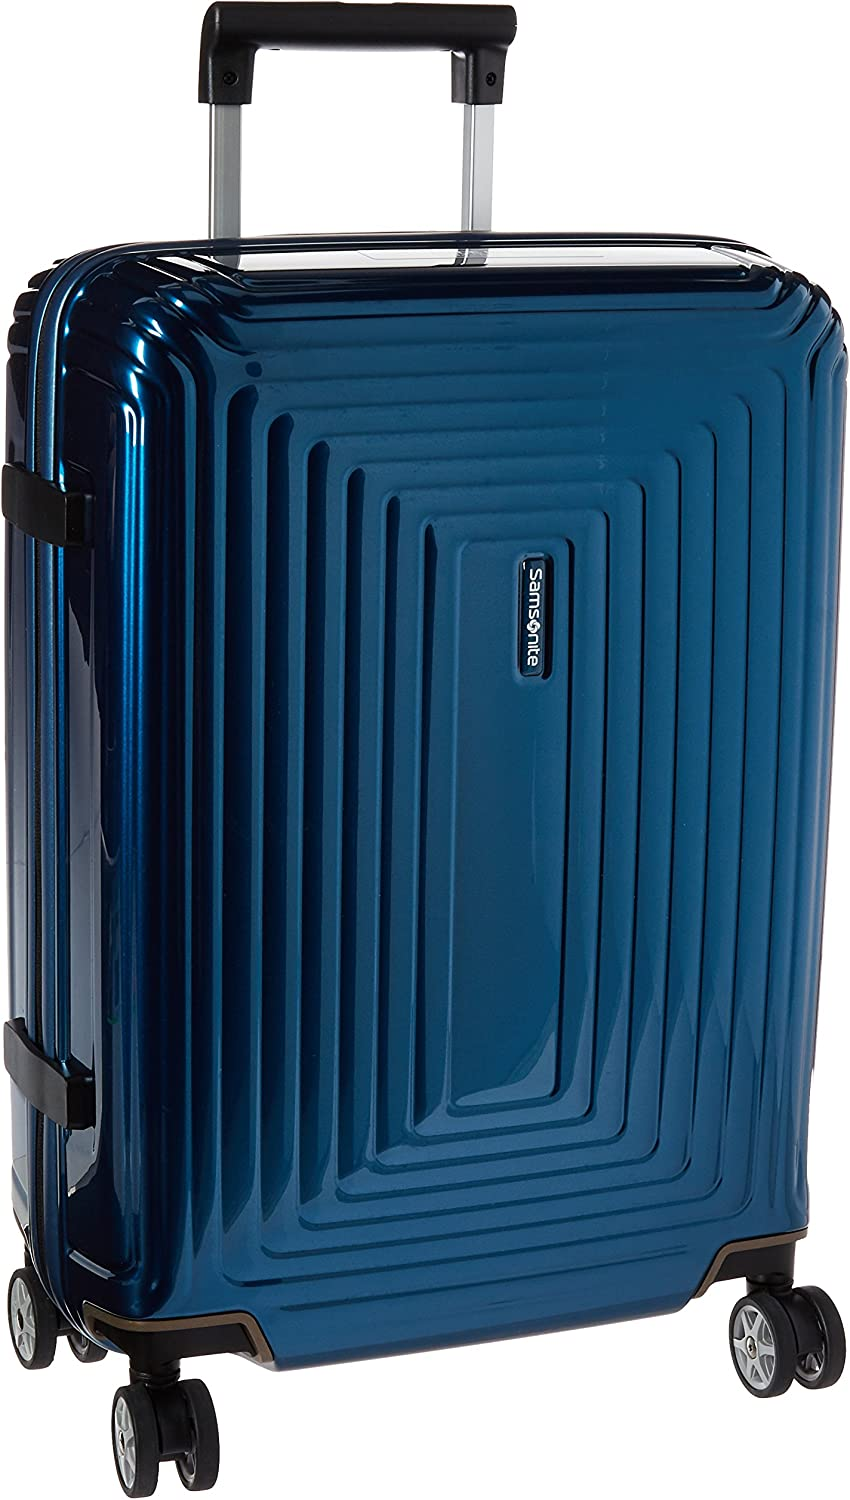 Samsonite Neopulse Hardside Luggage with Spinner Wheels, Metallic Blue, Checked-Large 28-Inch